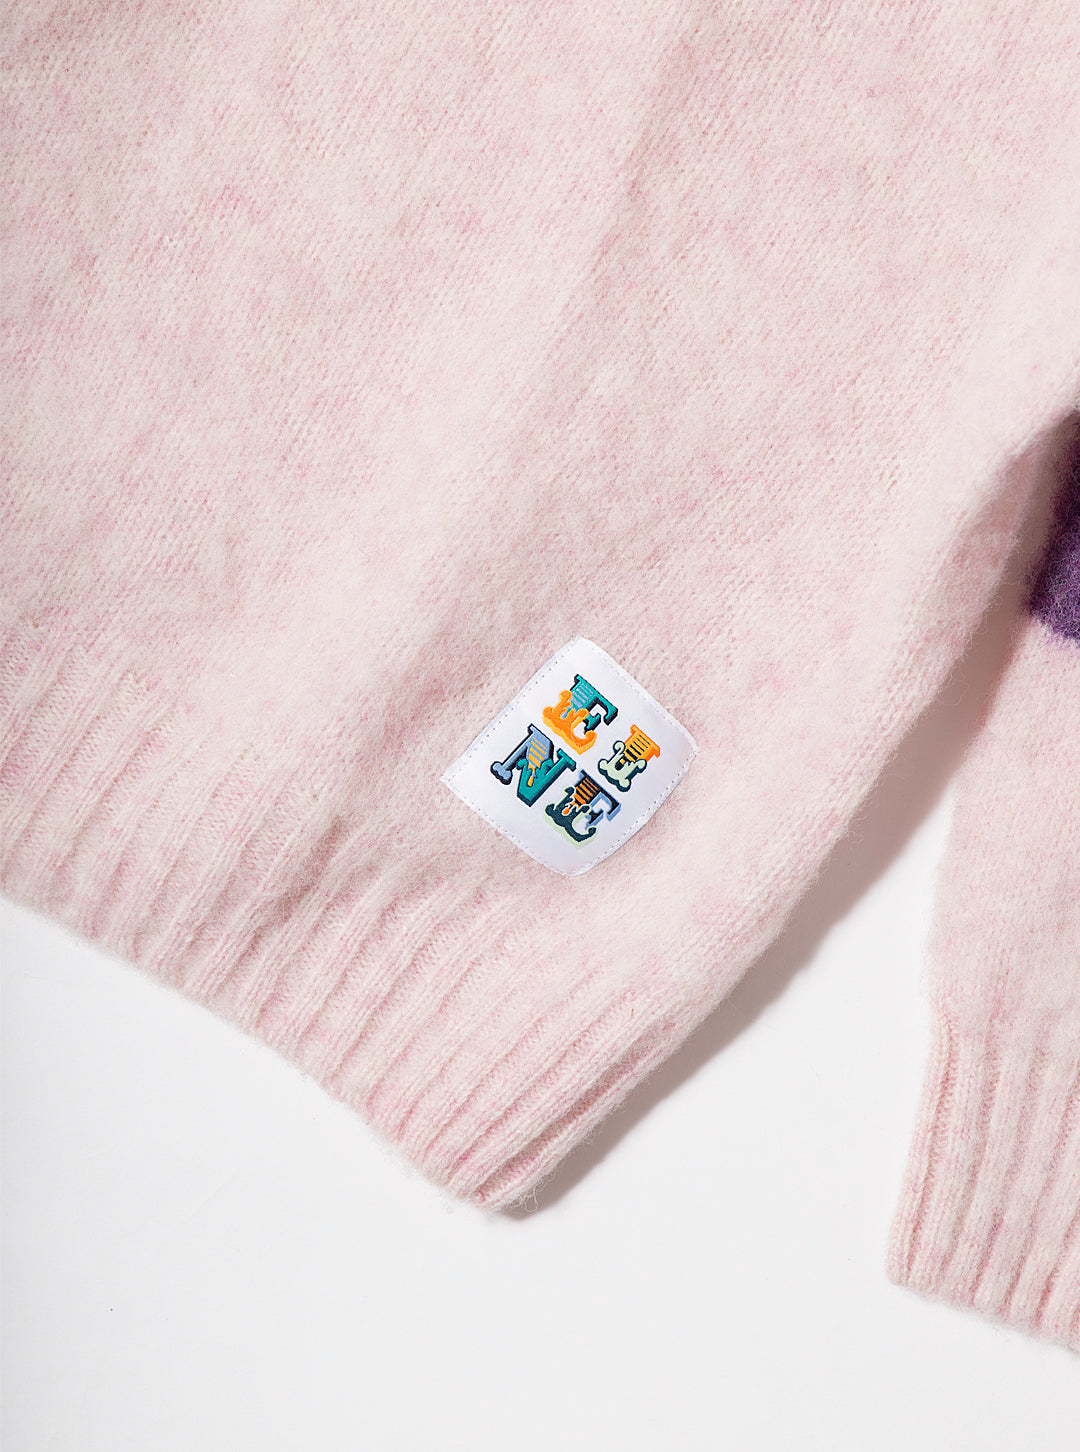 EINE Contrast Brushed Wool Jumper - Pink Purple Sample